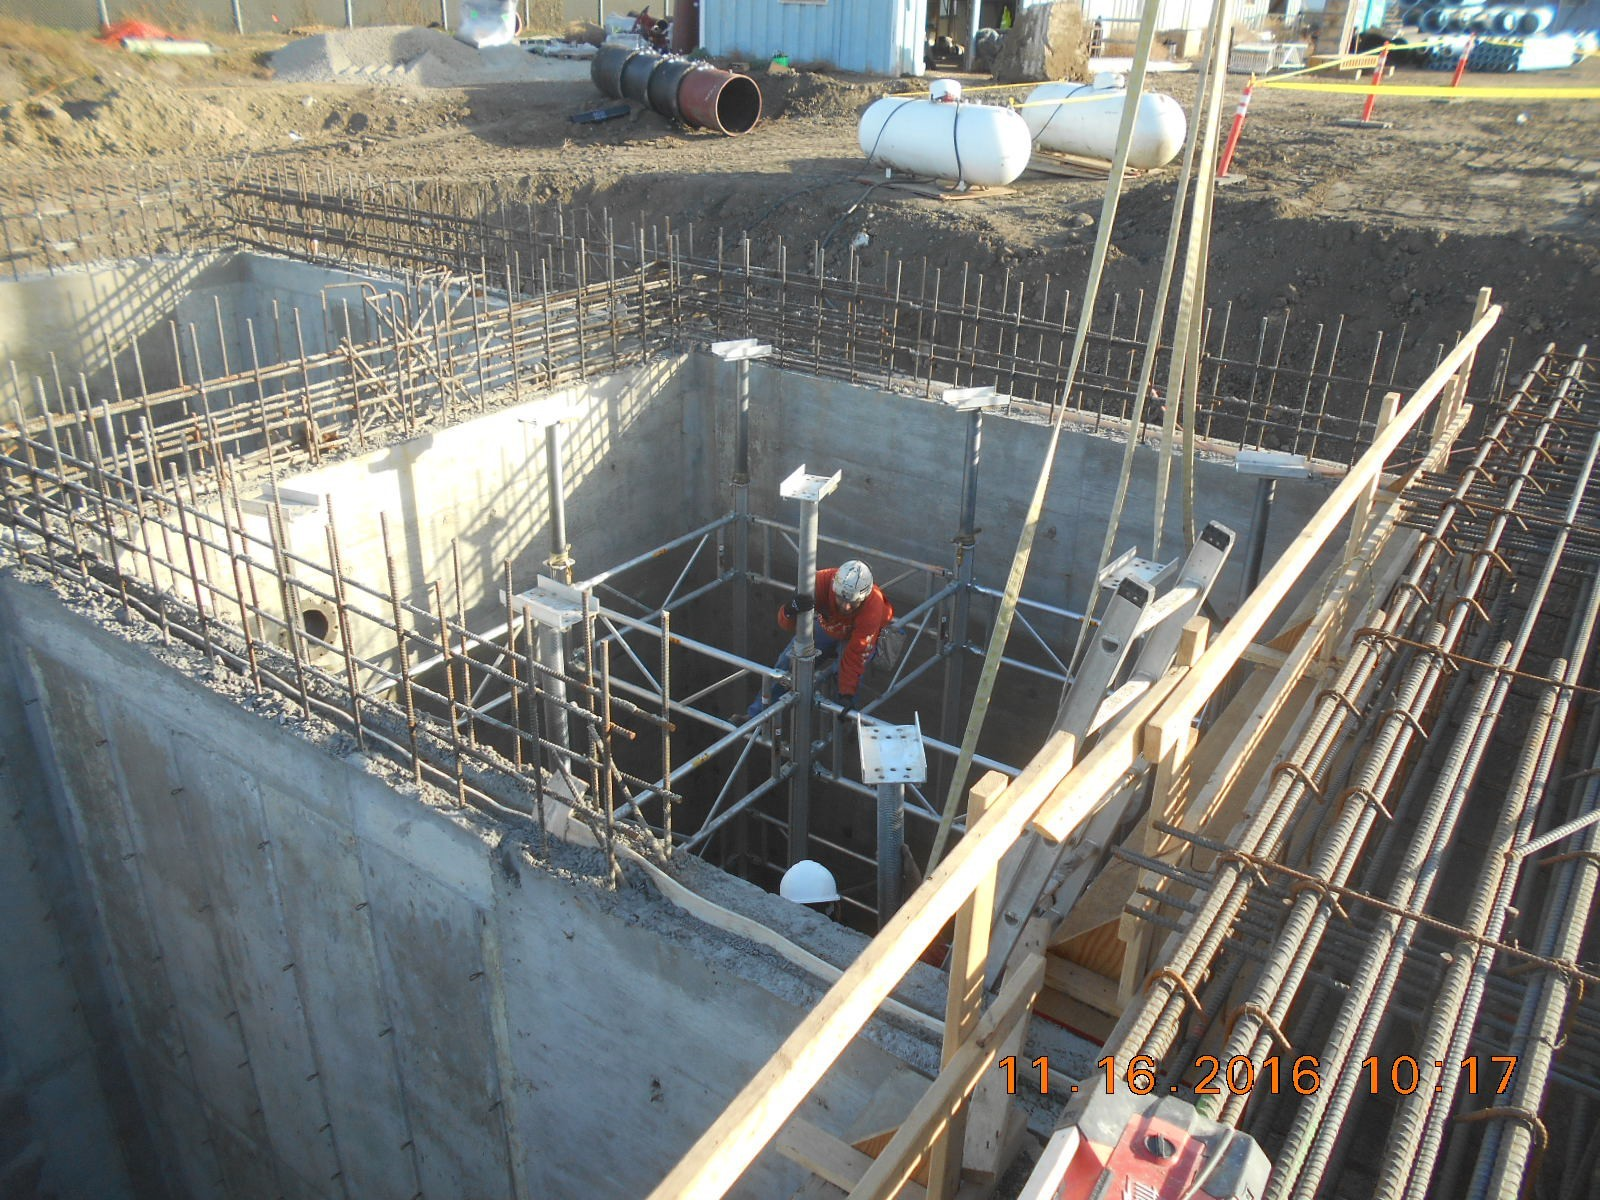 JTJ placing shoring in the BW Recovery basin for the first floor pour 4.